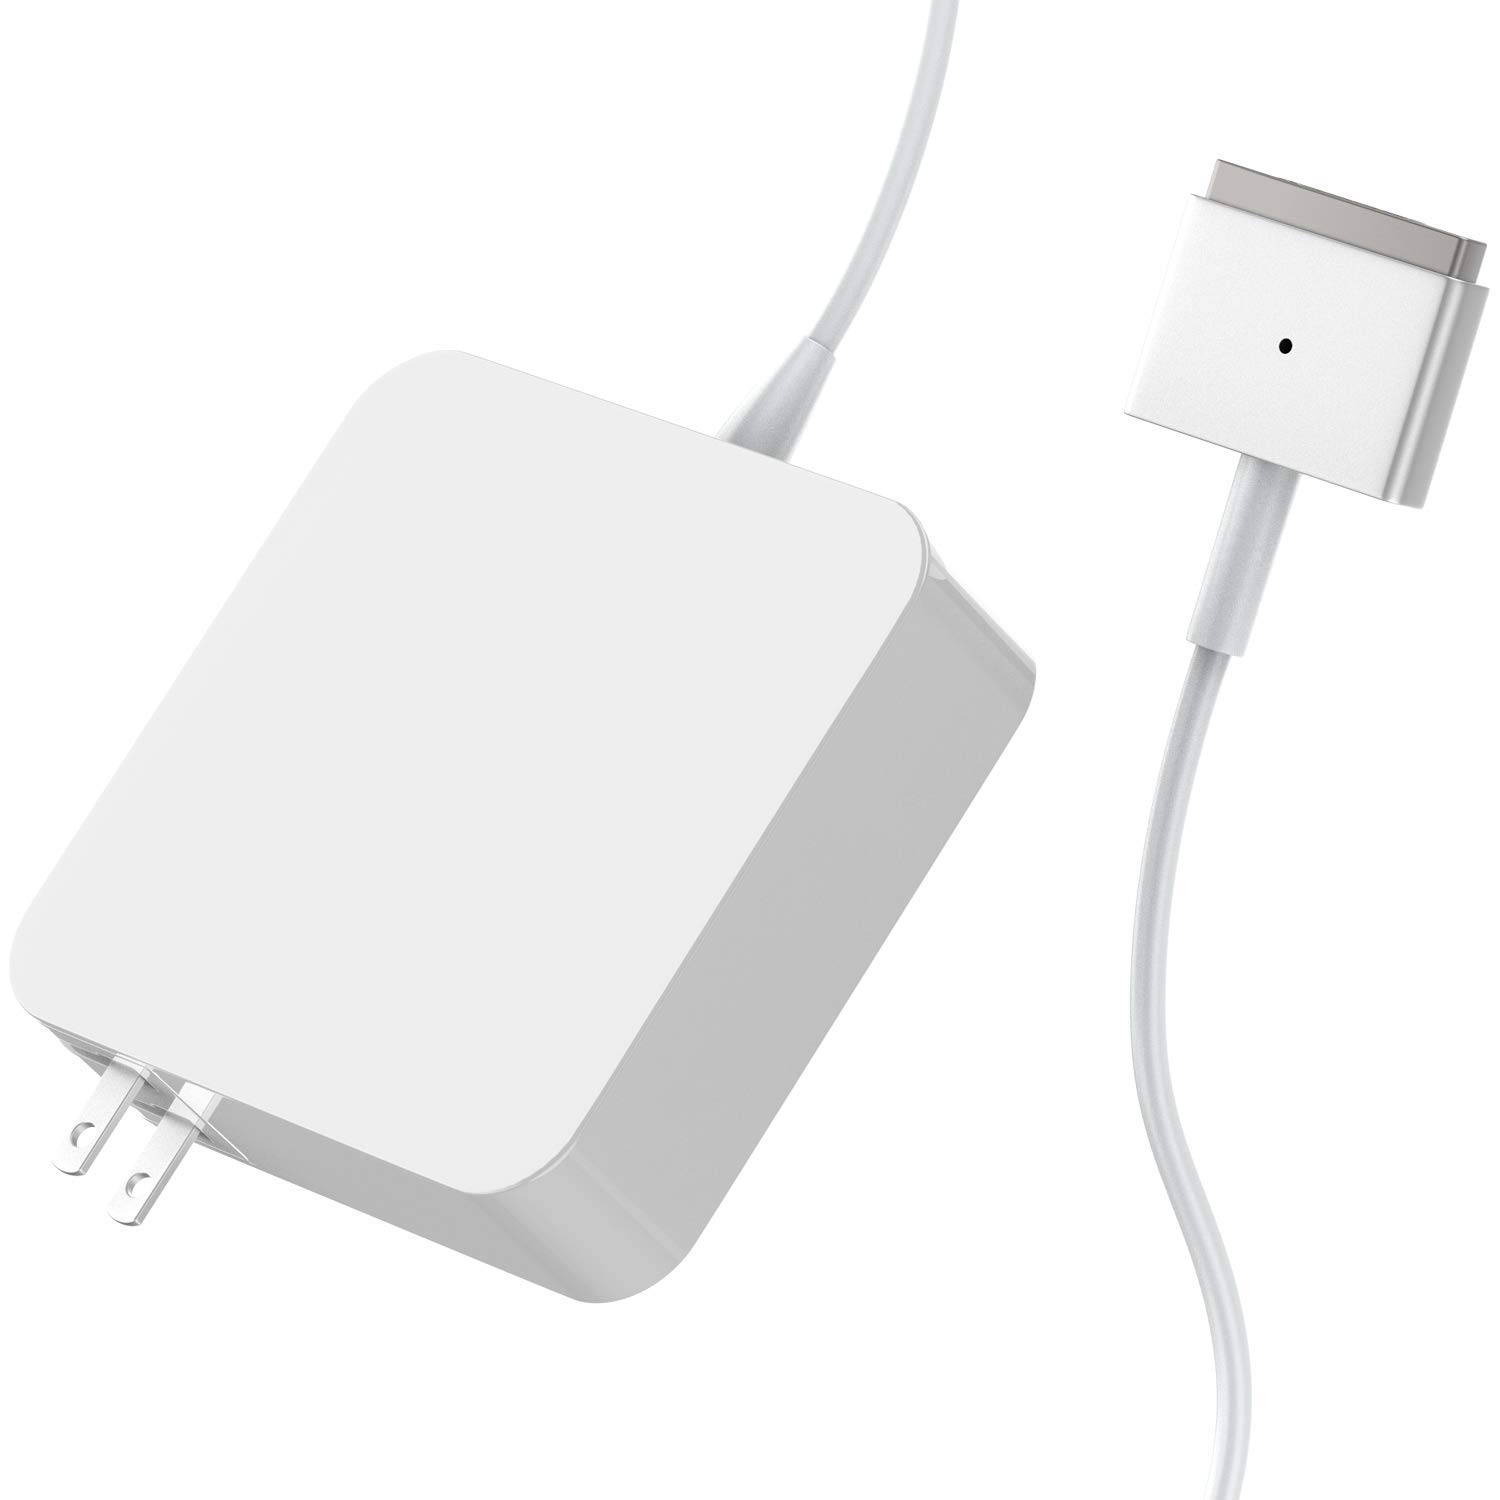 Mac Book Air Charger, 45W Magsafe 2 T-Tip Charger Adapter a936